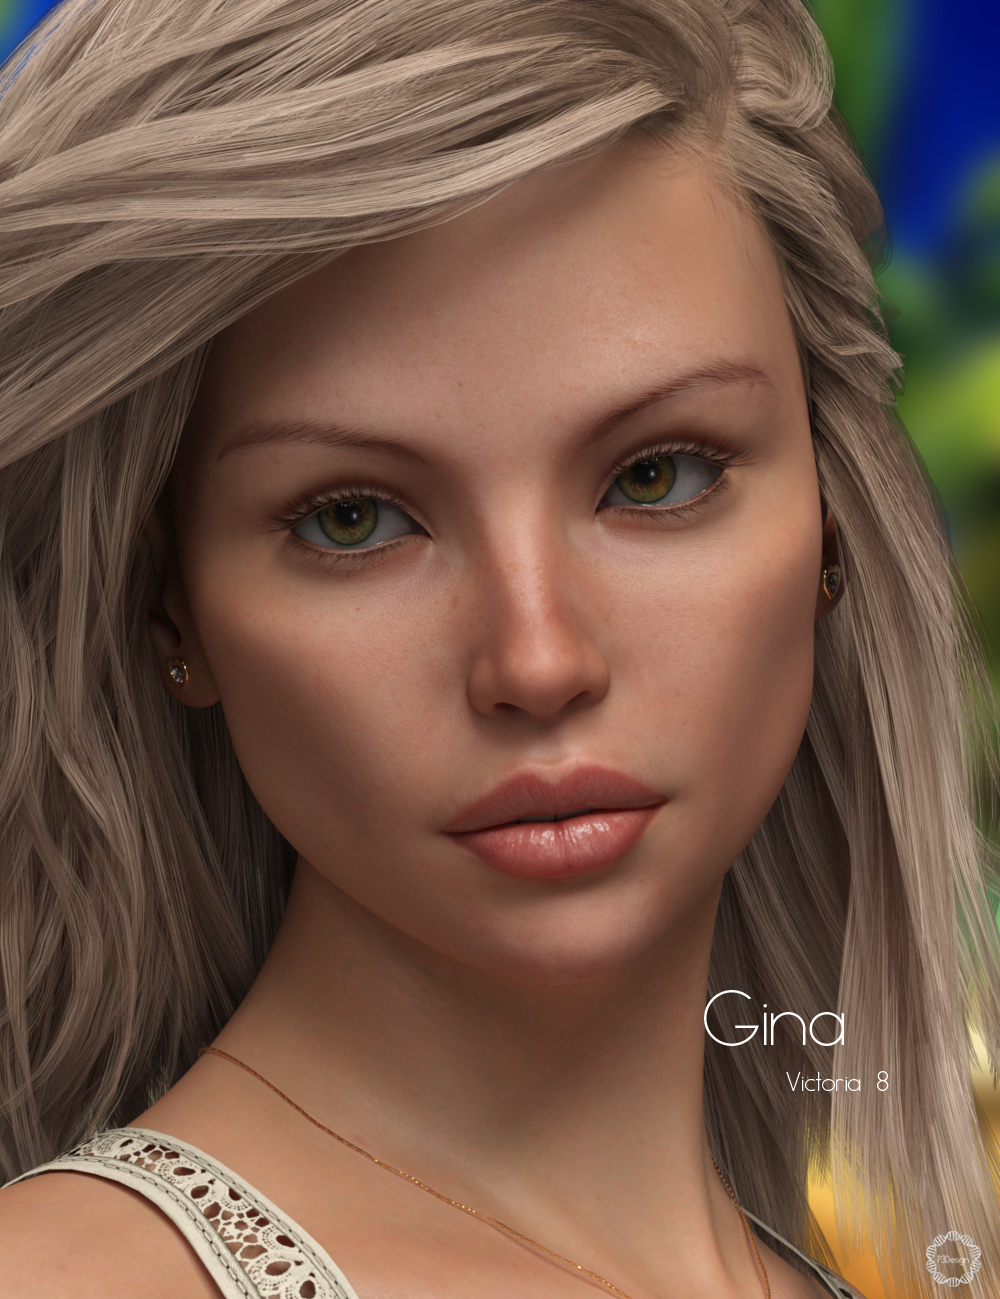 P3D Gina for Victoria 8 by: P3Design, 3D Models by Daz 3D